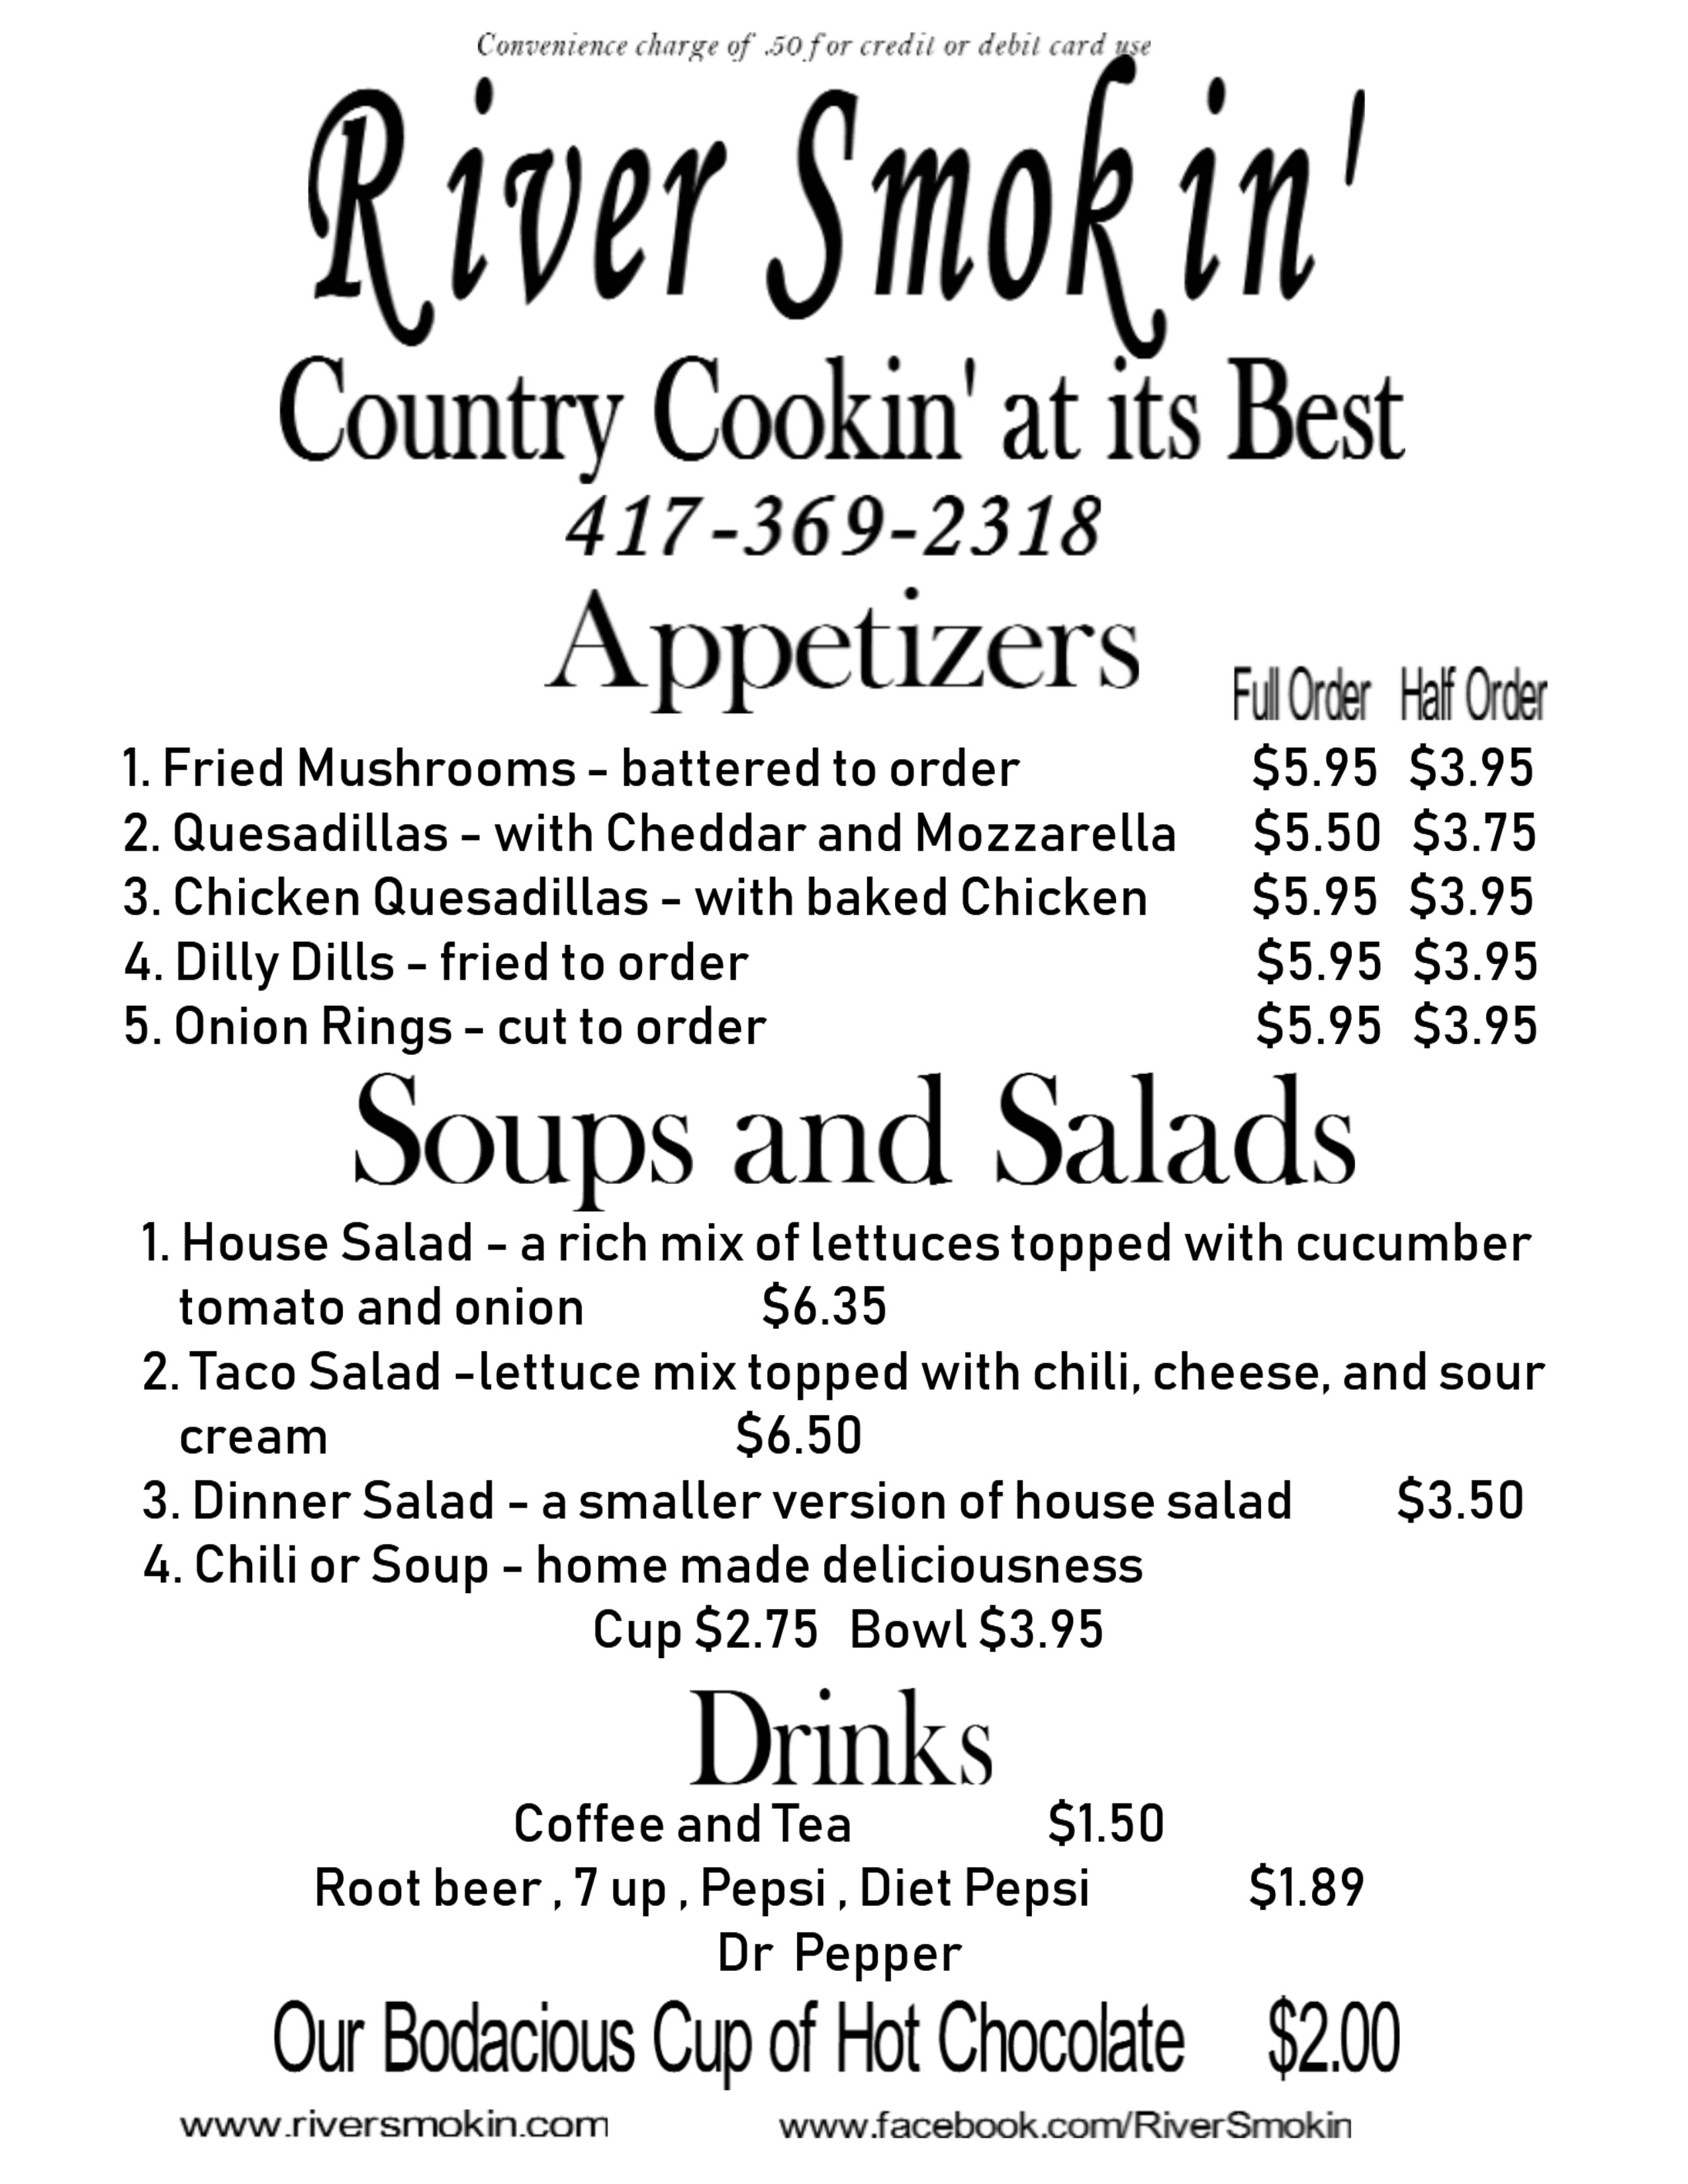 Appetizers and Salads Menu